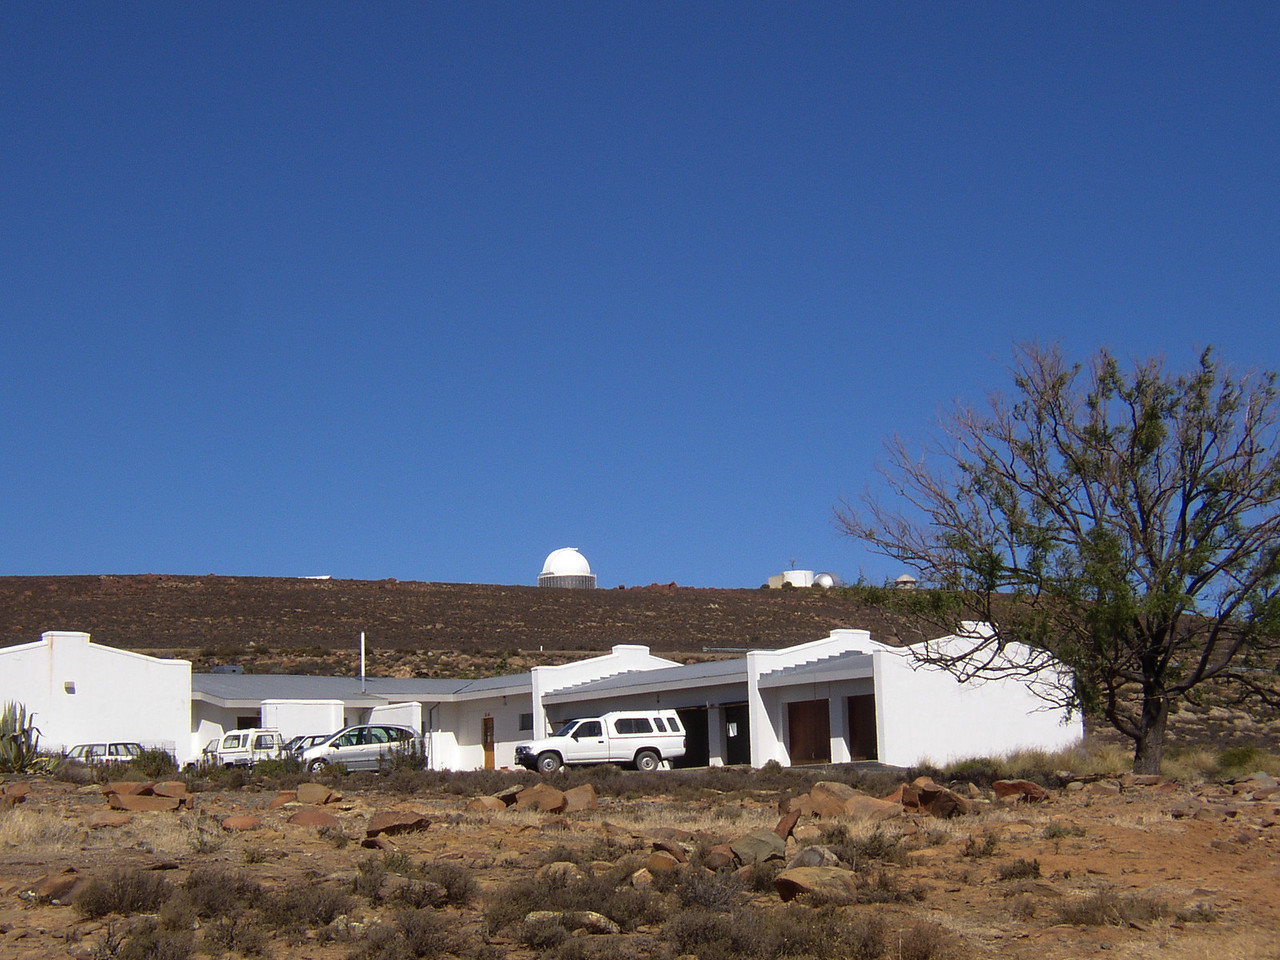 View from outside the residence looking up towards the telescopes.